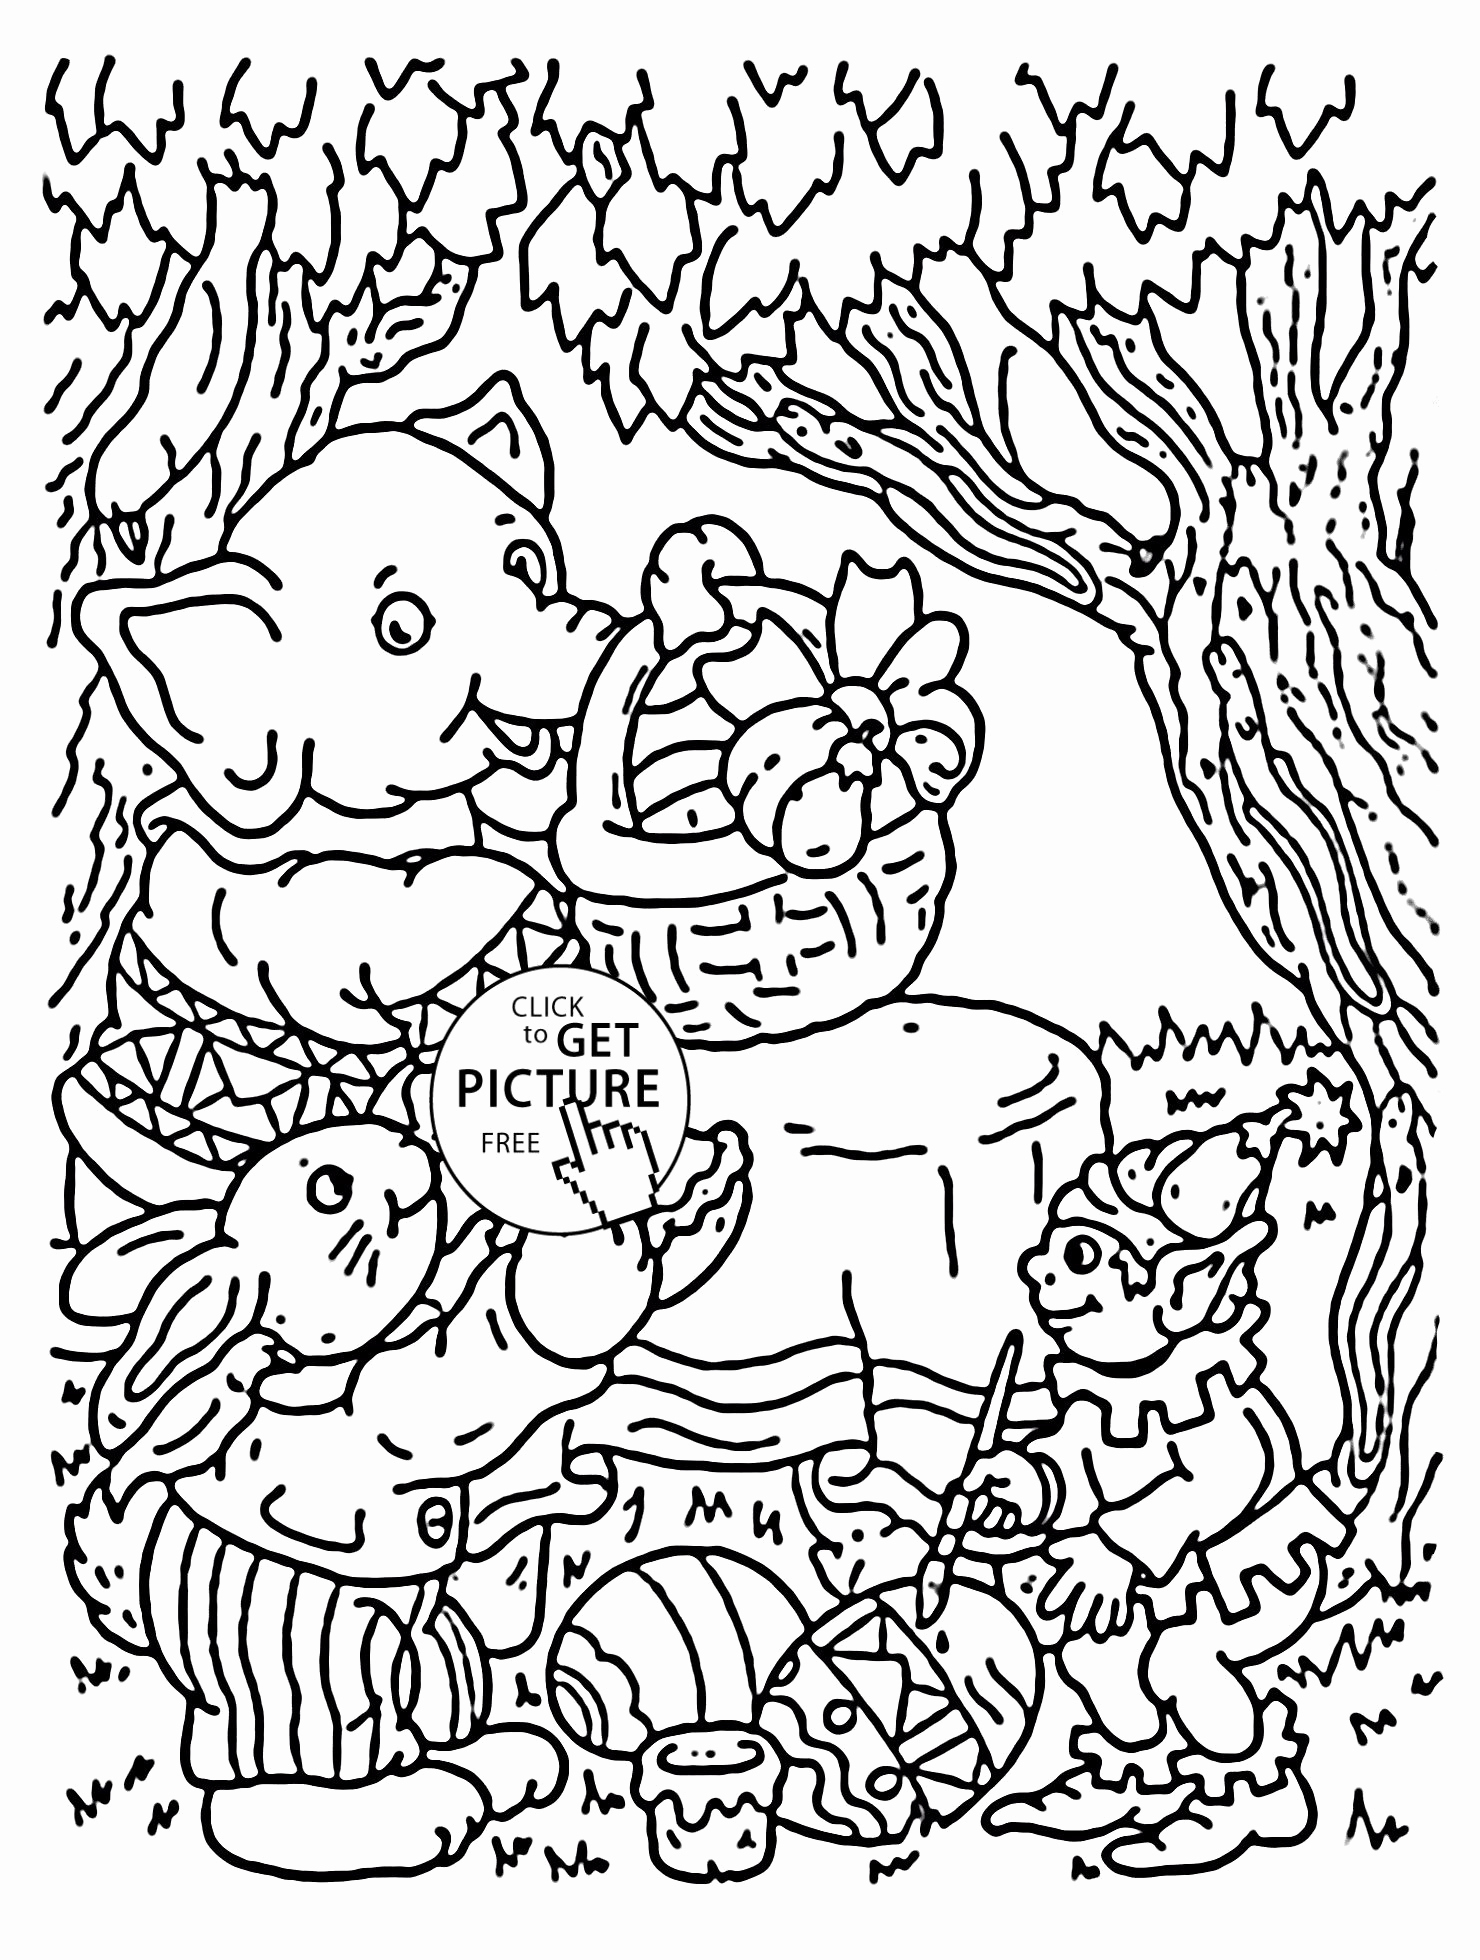 28 Shawn Mendes Coloring Pages Download Coloring Sheets